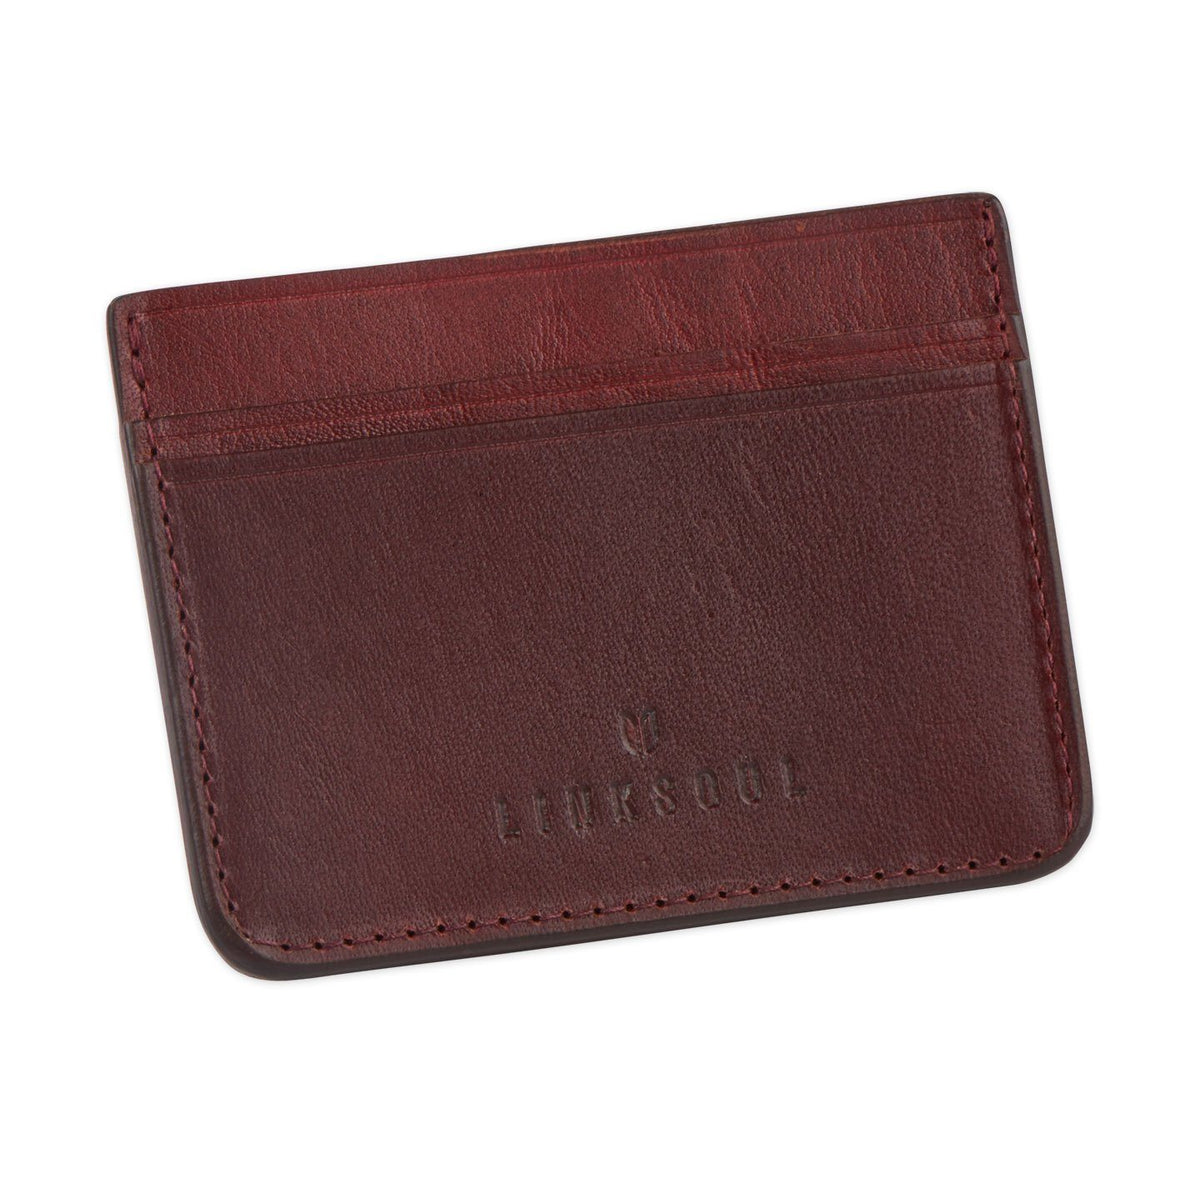 4 Pocket Card Holder